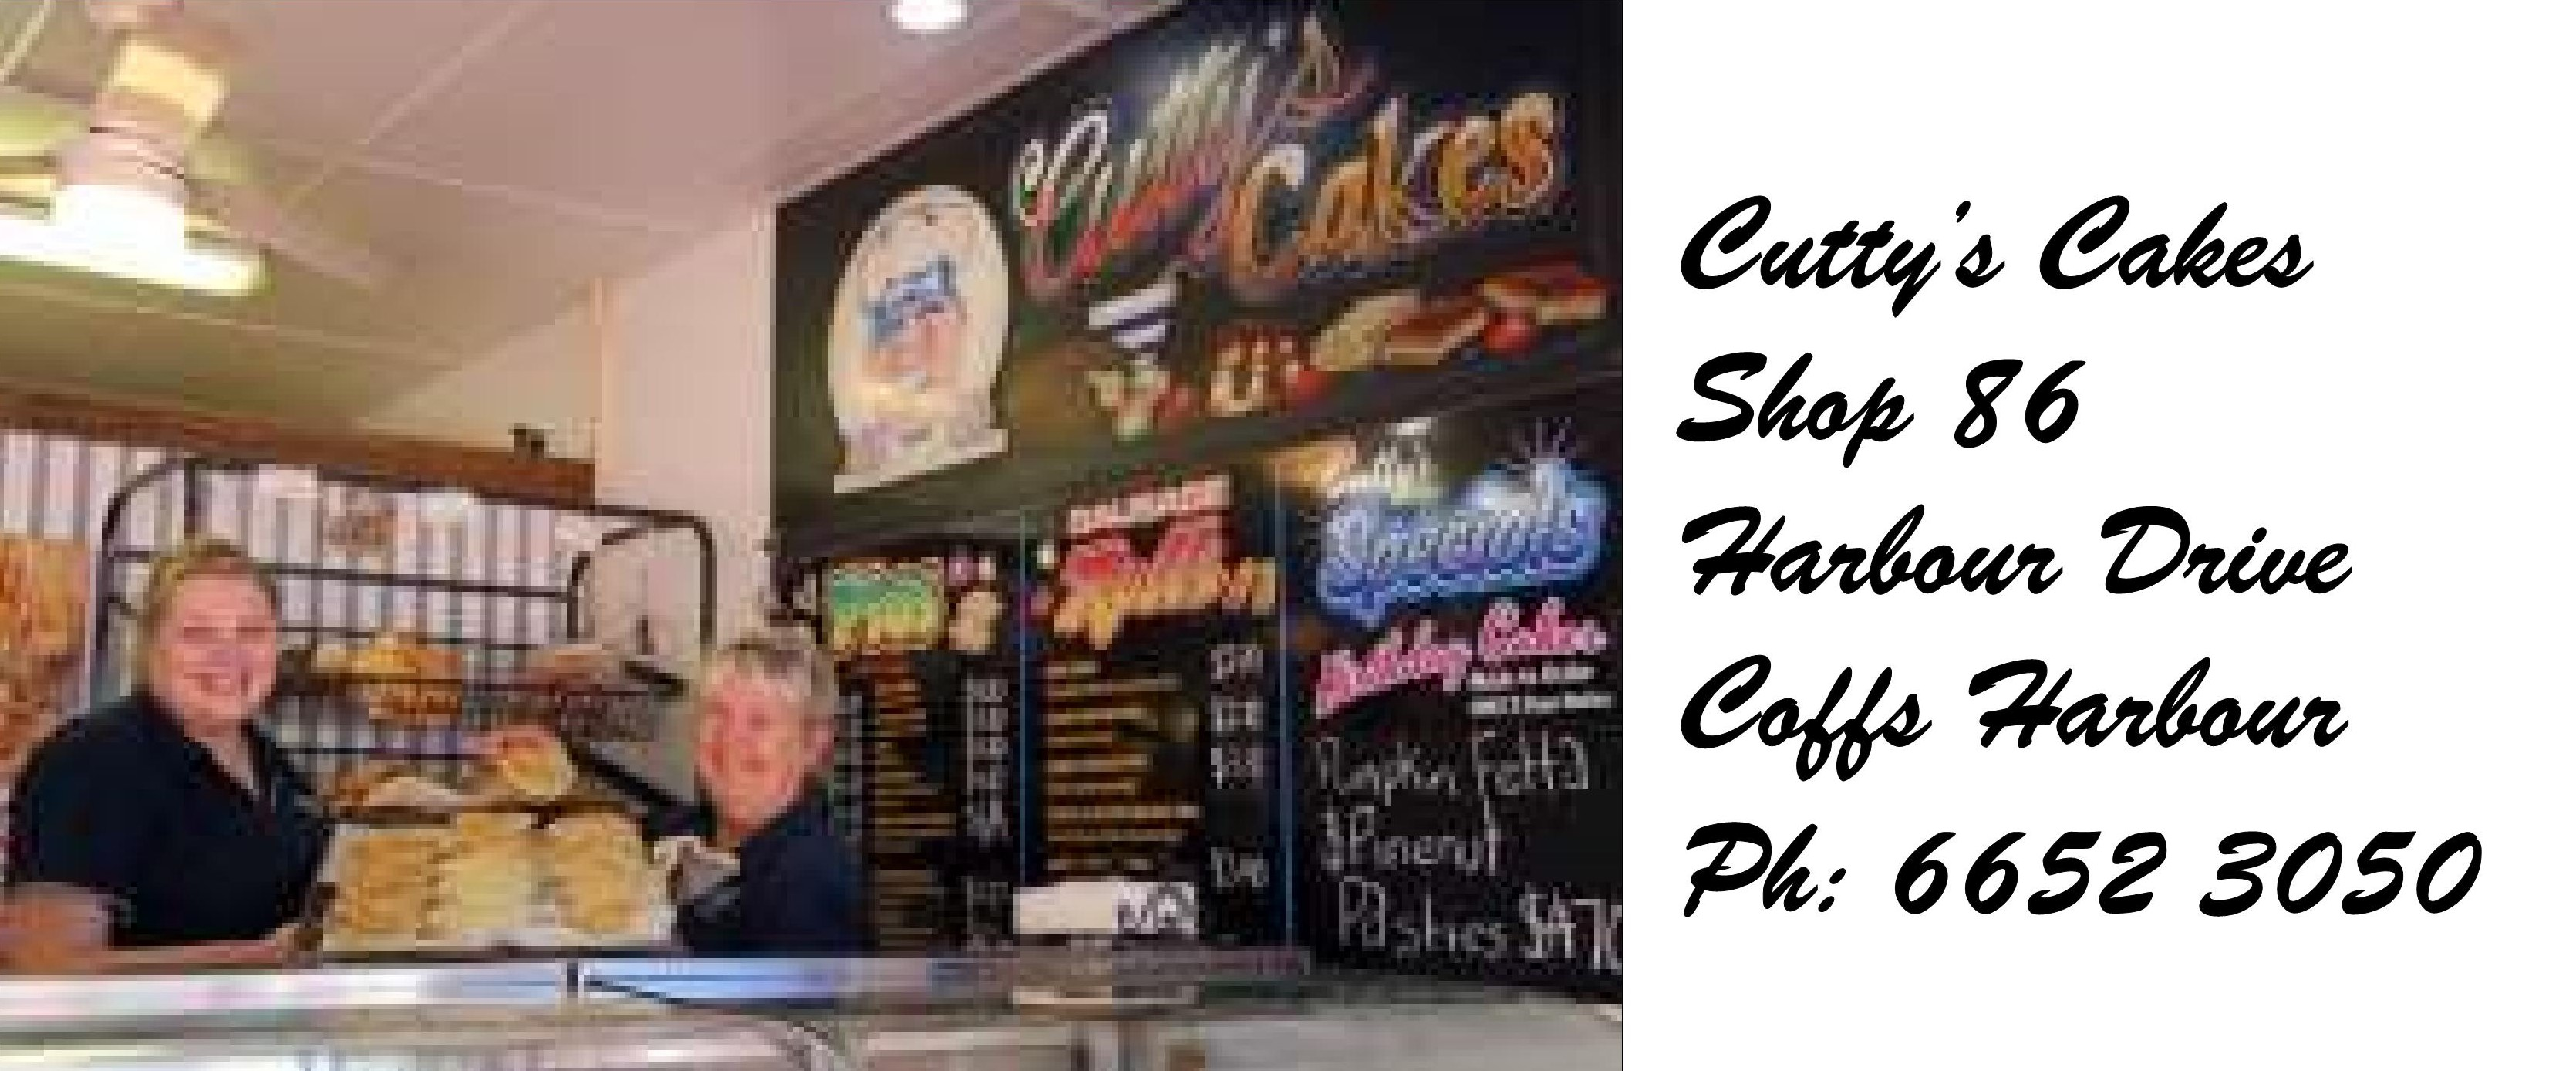 Cutty's Cakes